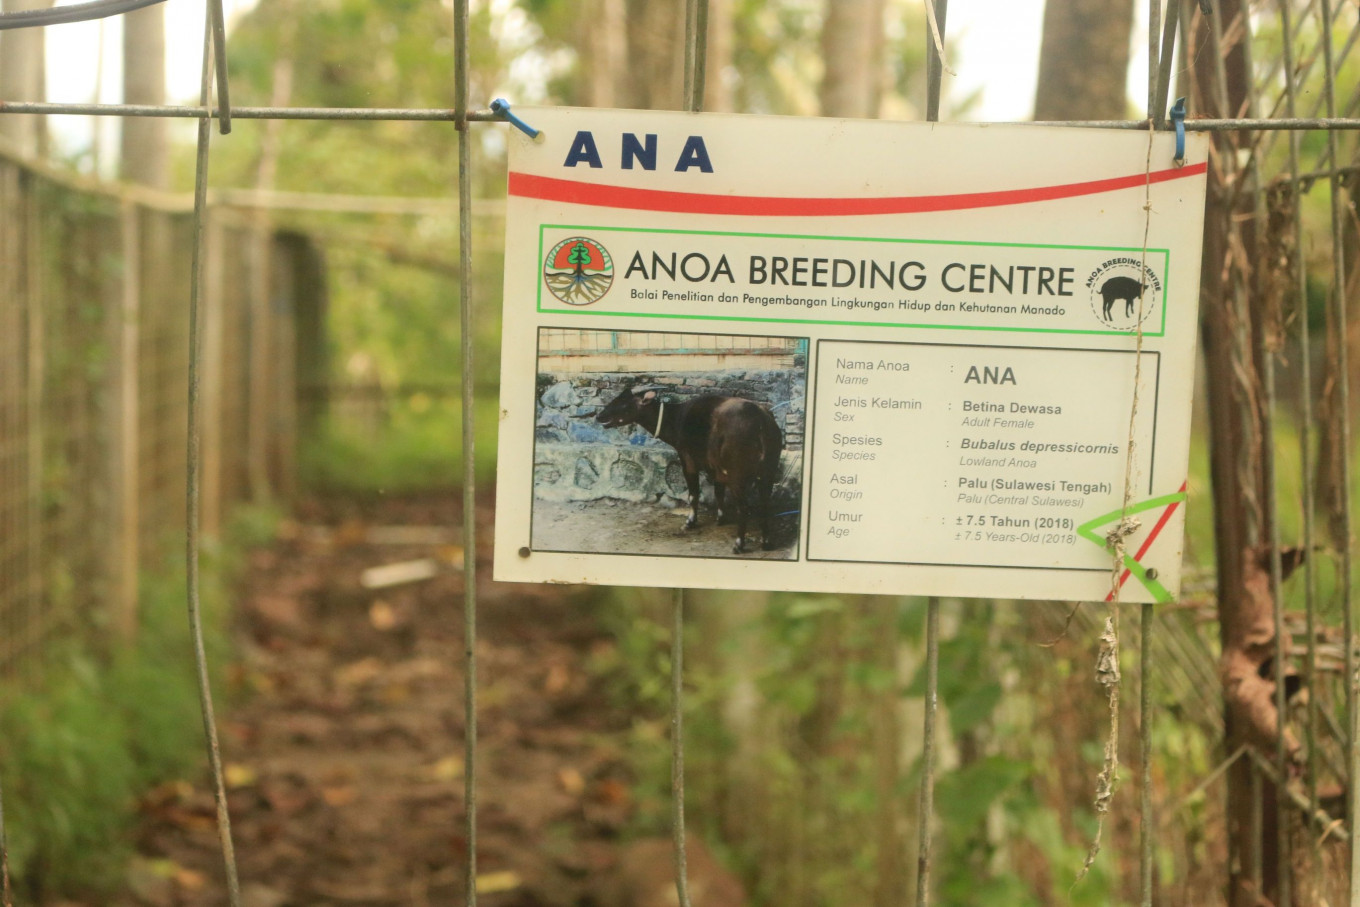 Adult female anoa, two calves die at breeding facility in North Sulawesi